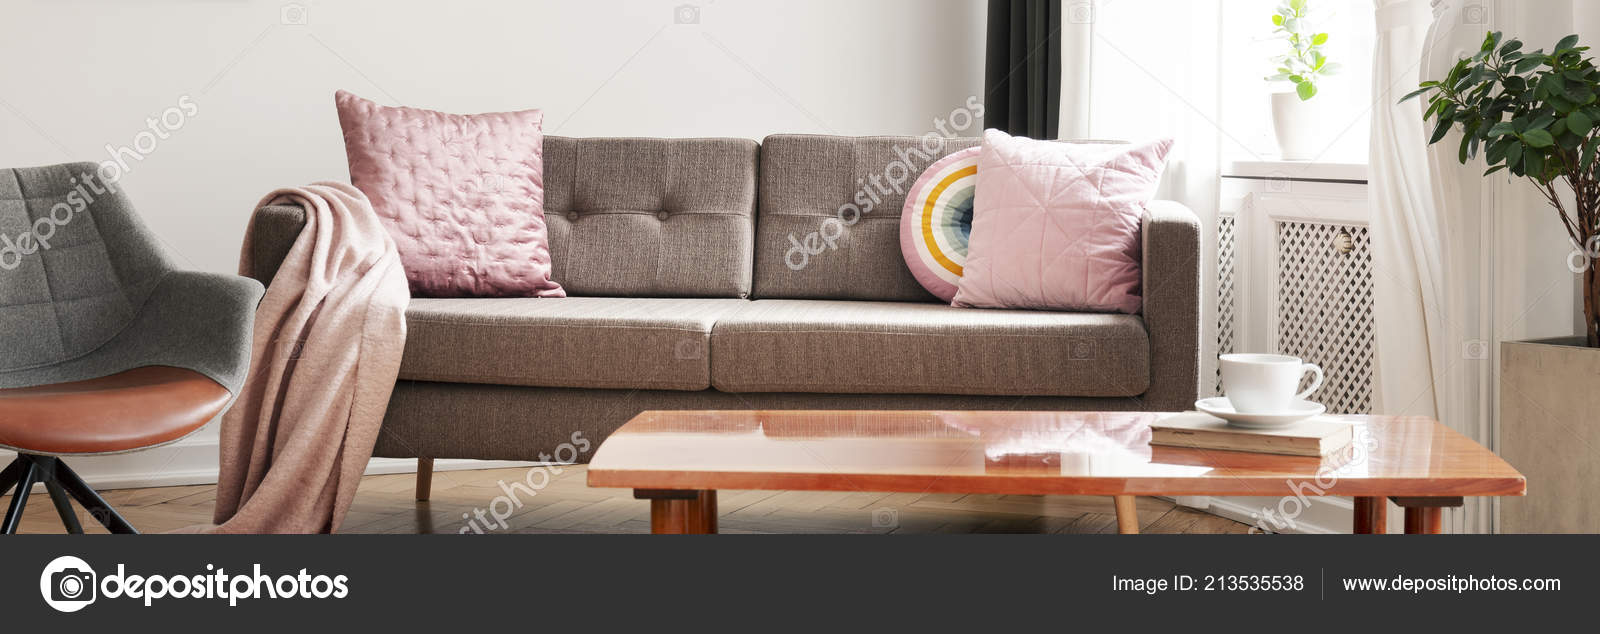 Amazing Panorama Wooden Table Next Sofa Pink Pillows Armchair Uwap Interior Chair Design Uwaporg